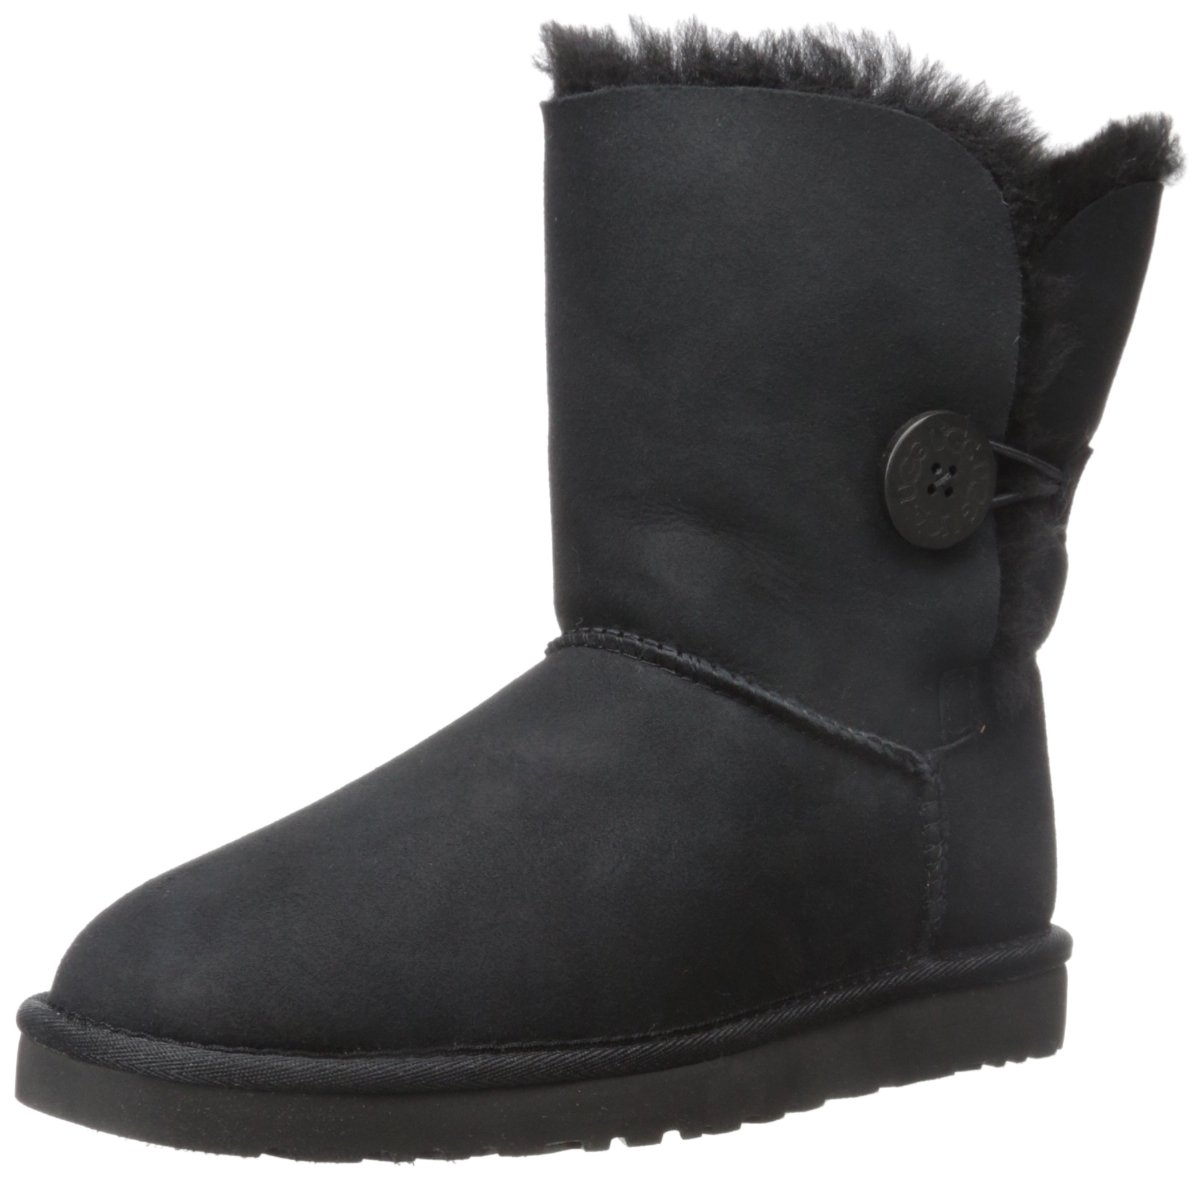 UGG Australia Girls' Bailey Button Sheepskin Fashion Boot Black 5 M US